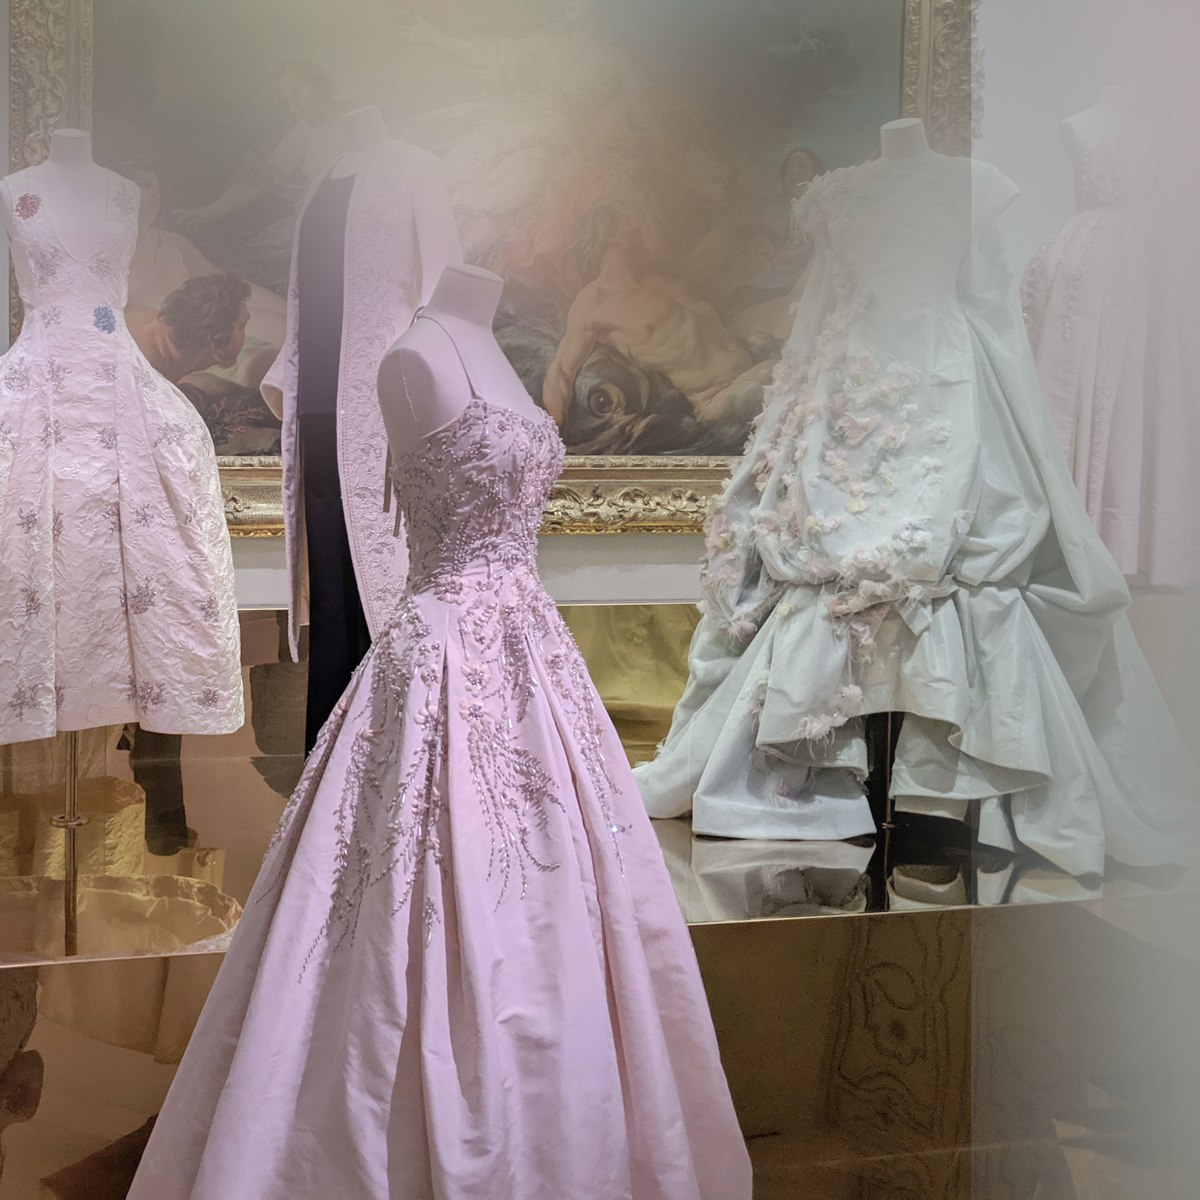 Akram's Ideas: Dior Exhibit